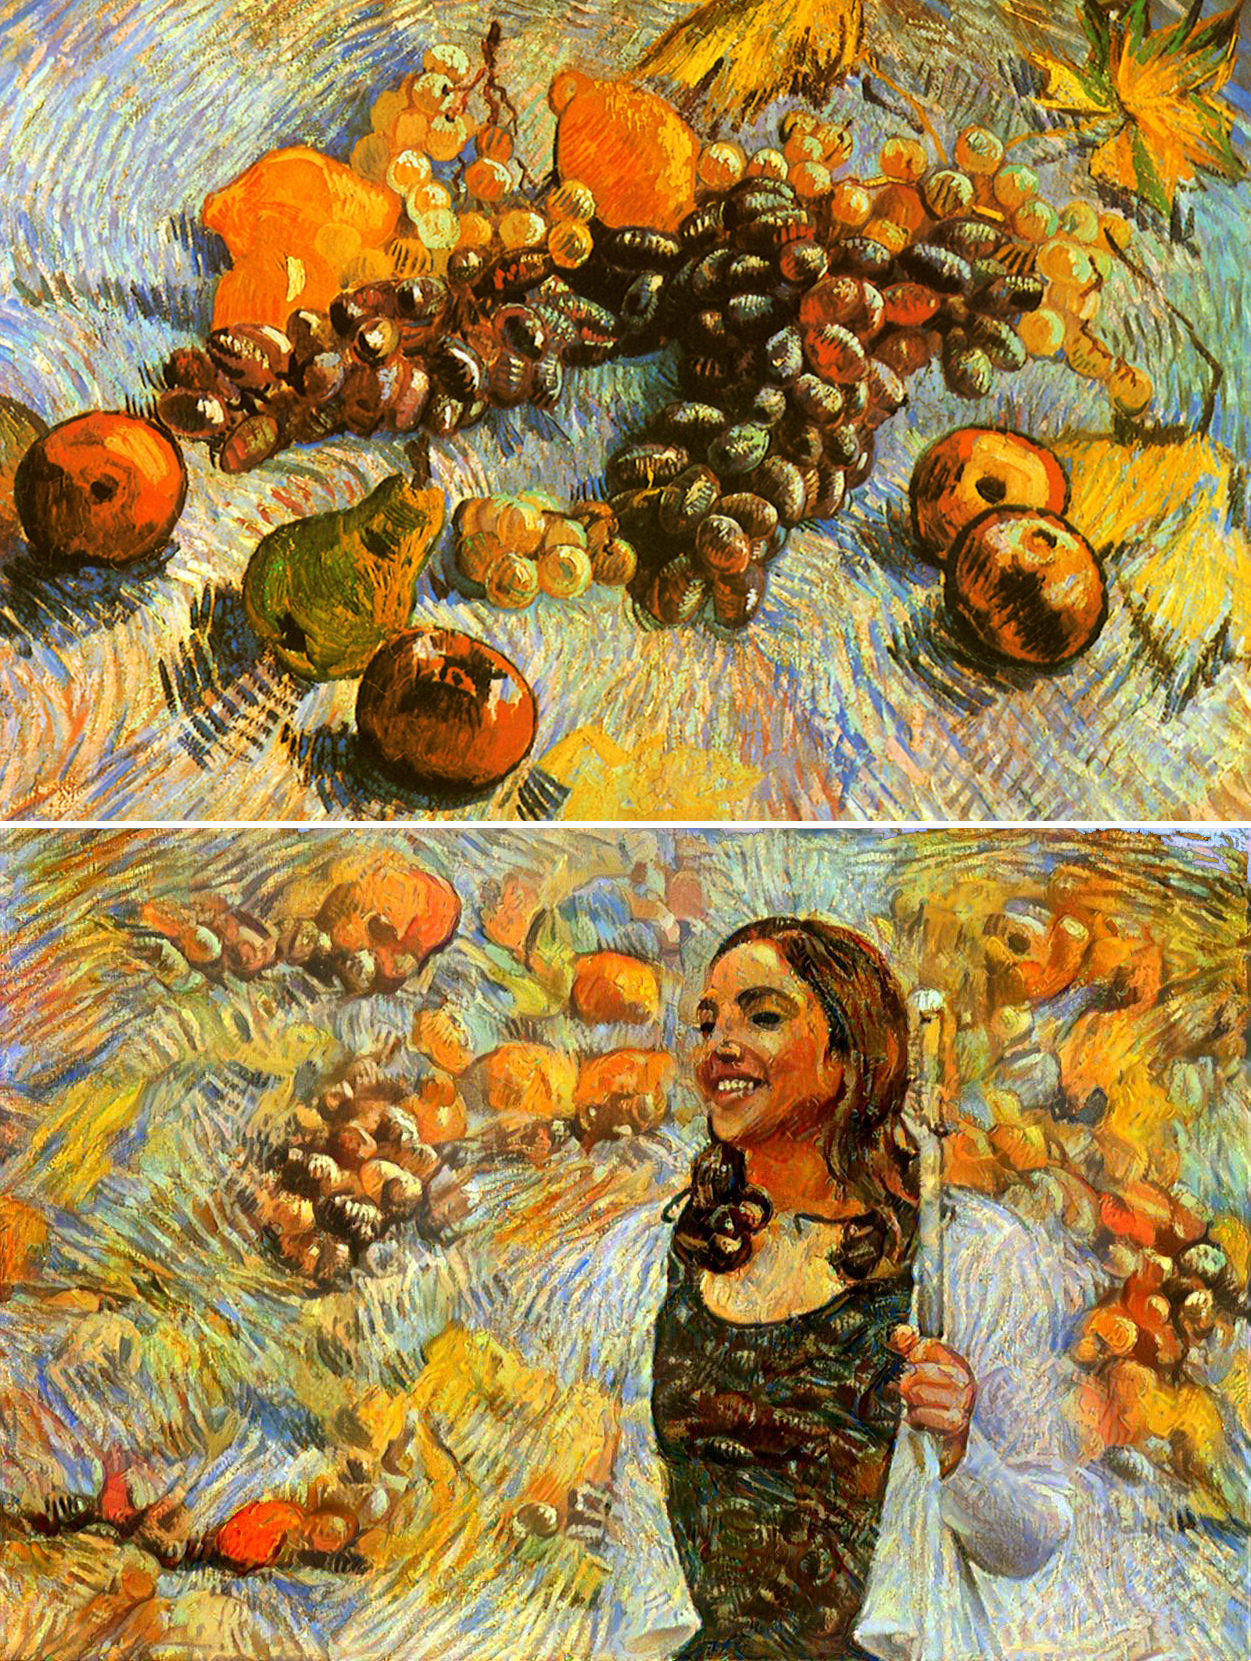 This image (above) was created using artificial intelligence to replicate Van Gogh's style (top). In a world where marvels like this are possible, we must ask 'What is real? What can we believe in? Who can we trust? And where do we fit in the big picture?'